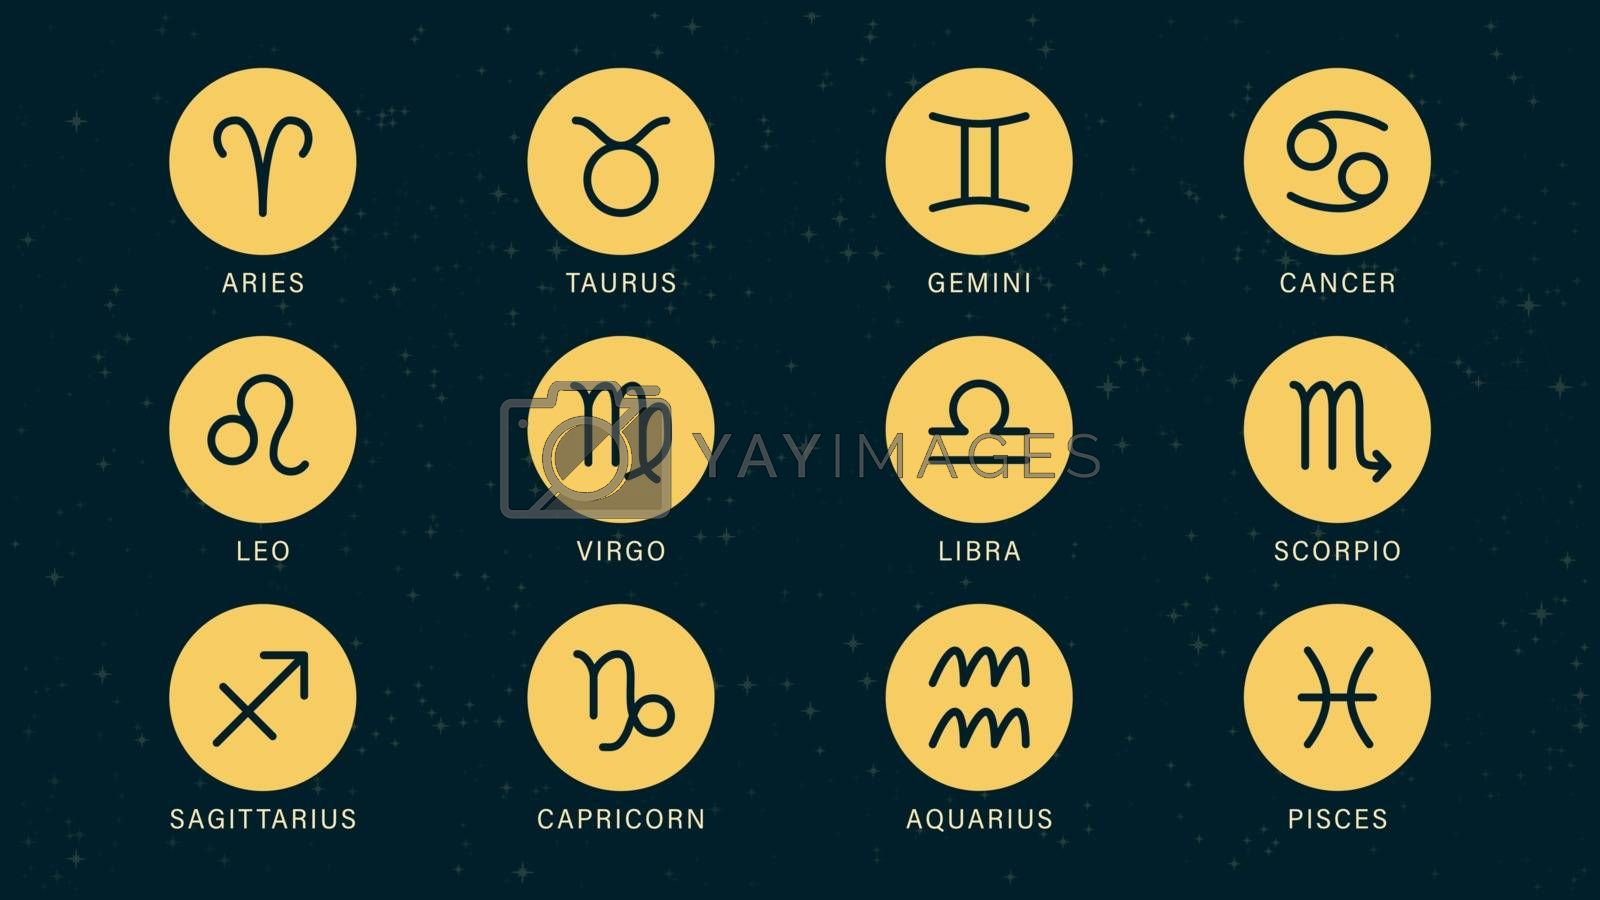 Detailed flat vector set of the zodiac horoscope signs as round symbols on top of a dimmed semi-accurate star map.